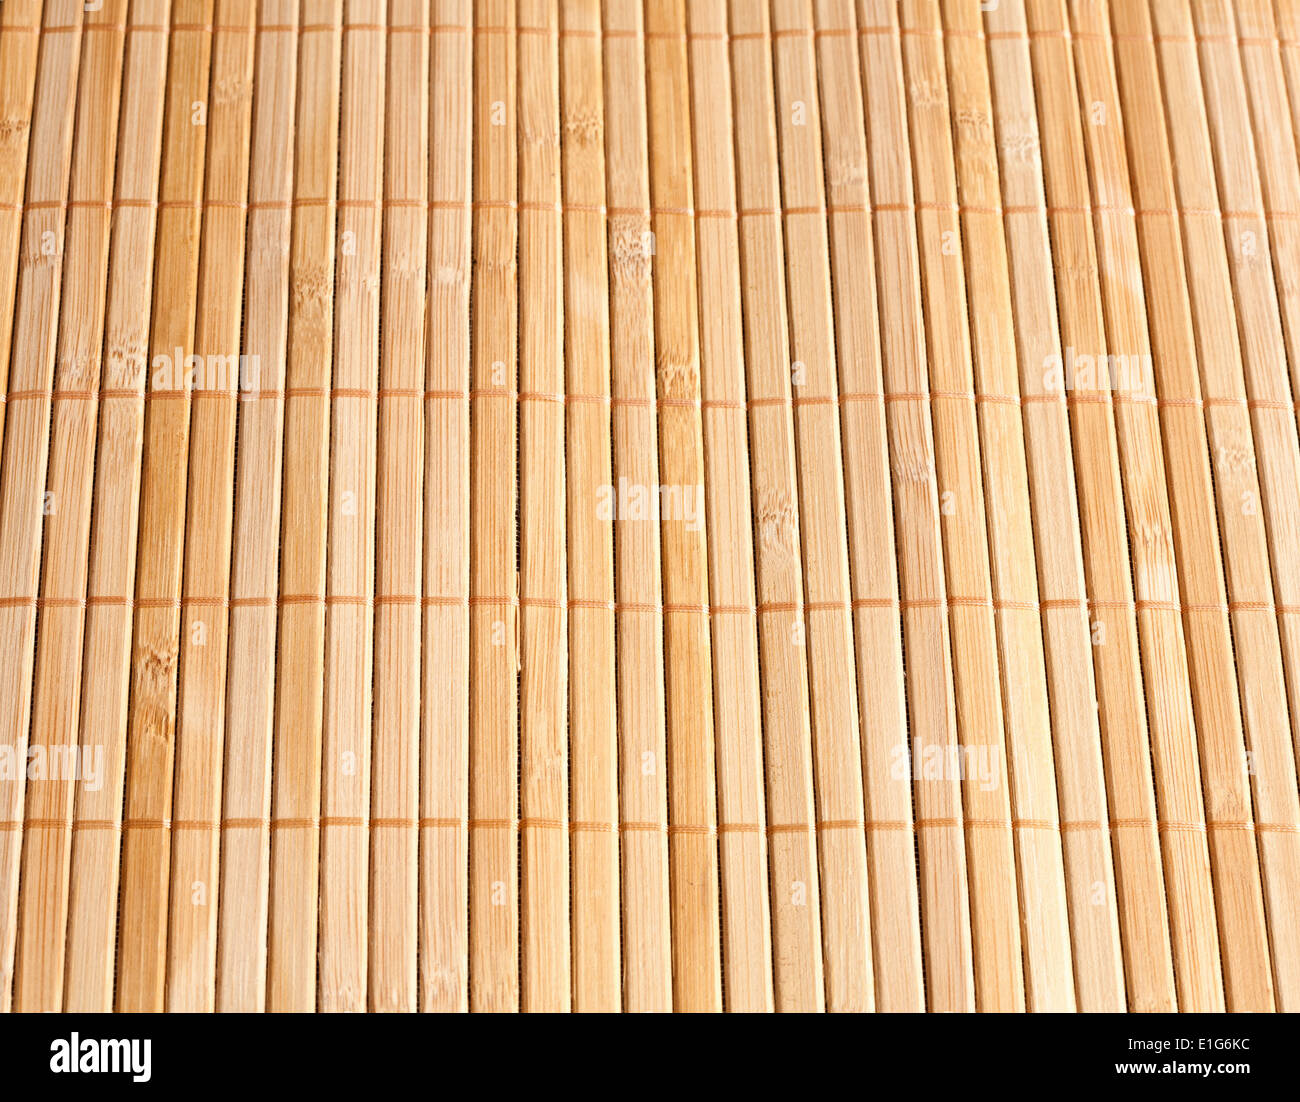 wood texture with natural patterns - Stock Image